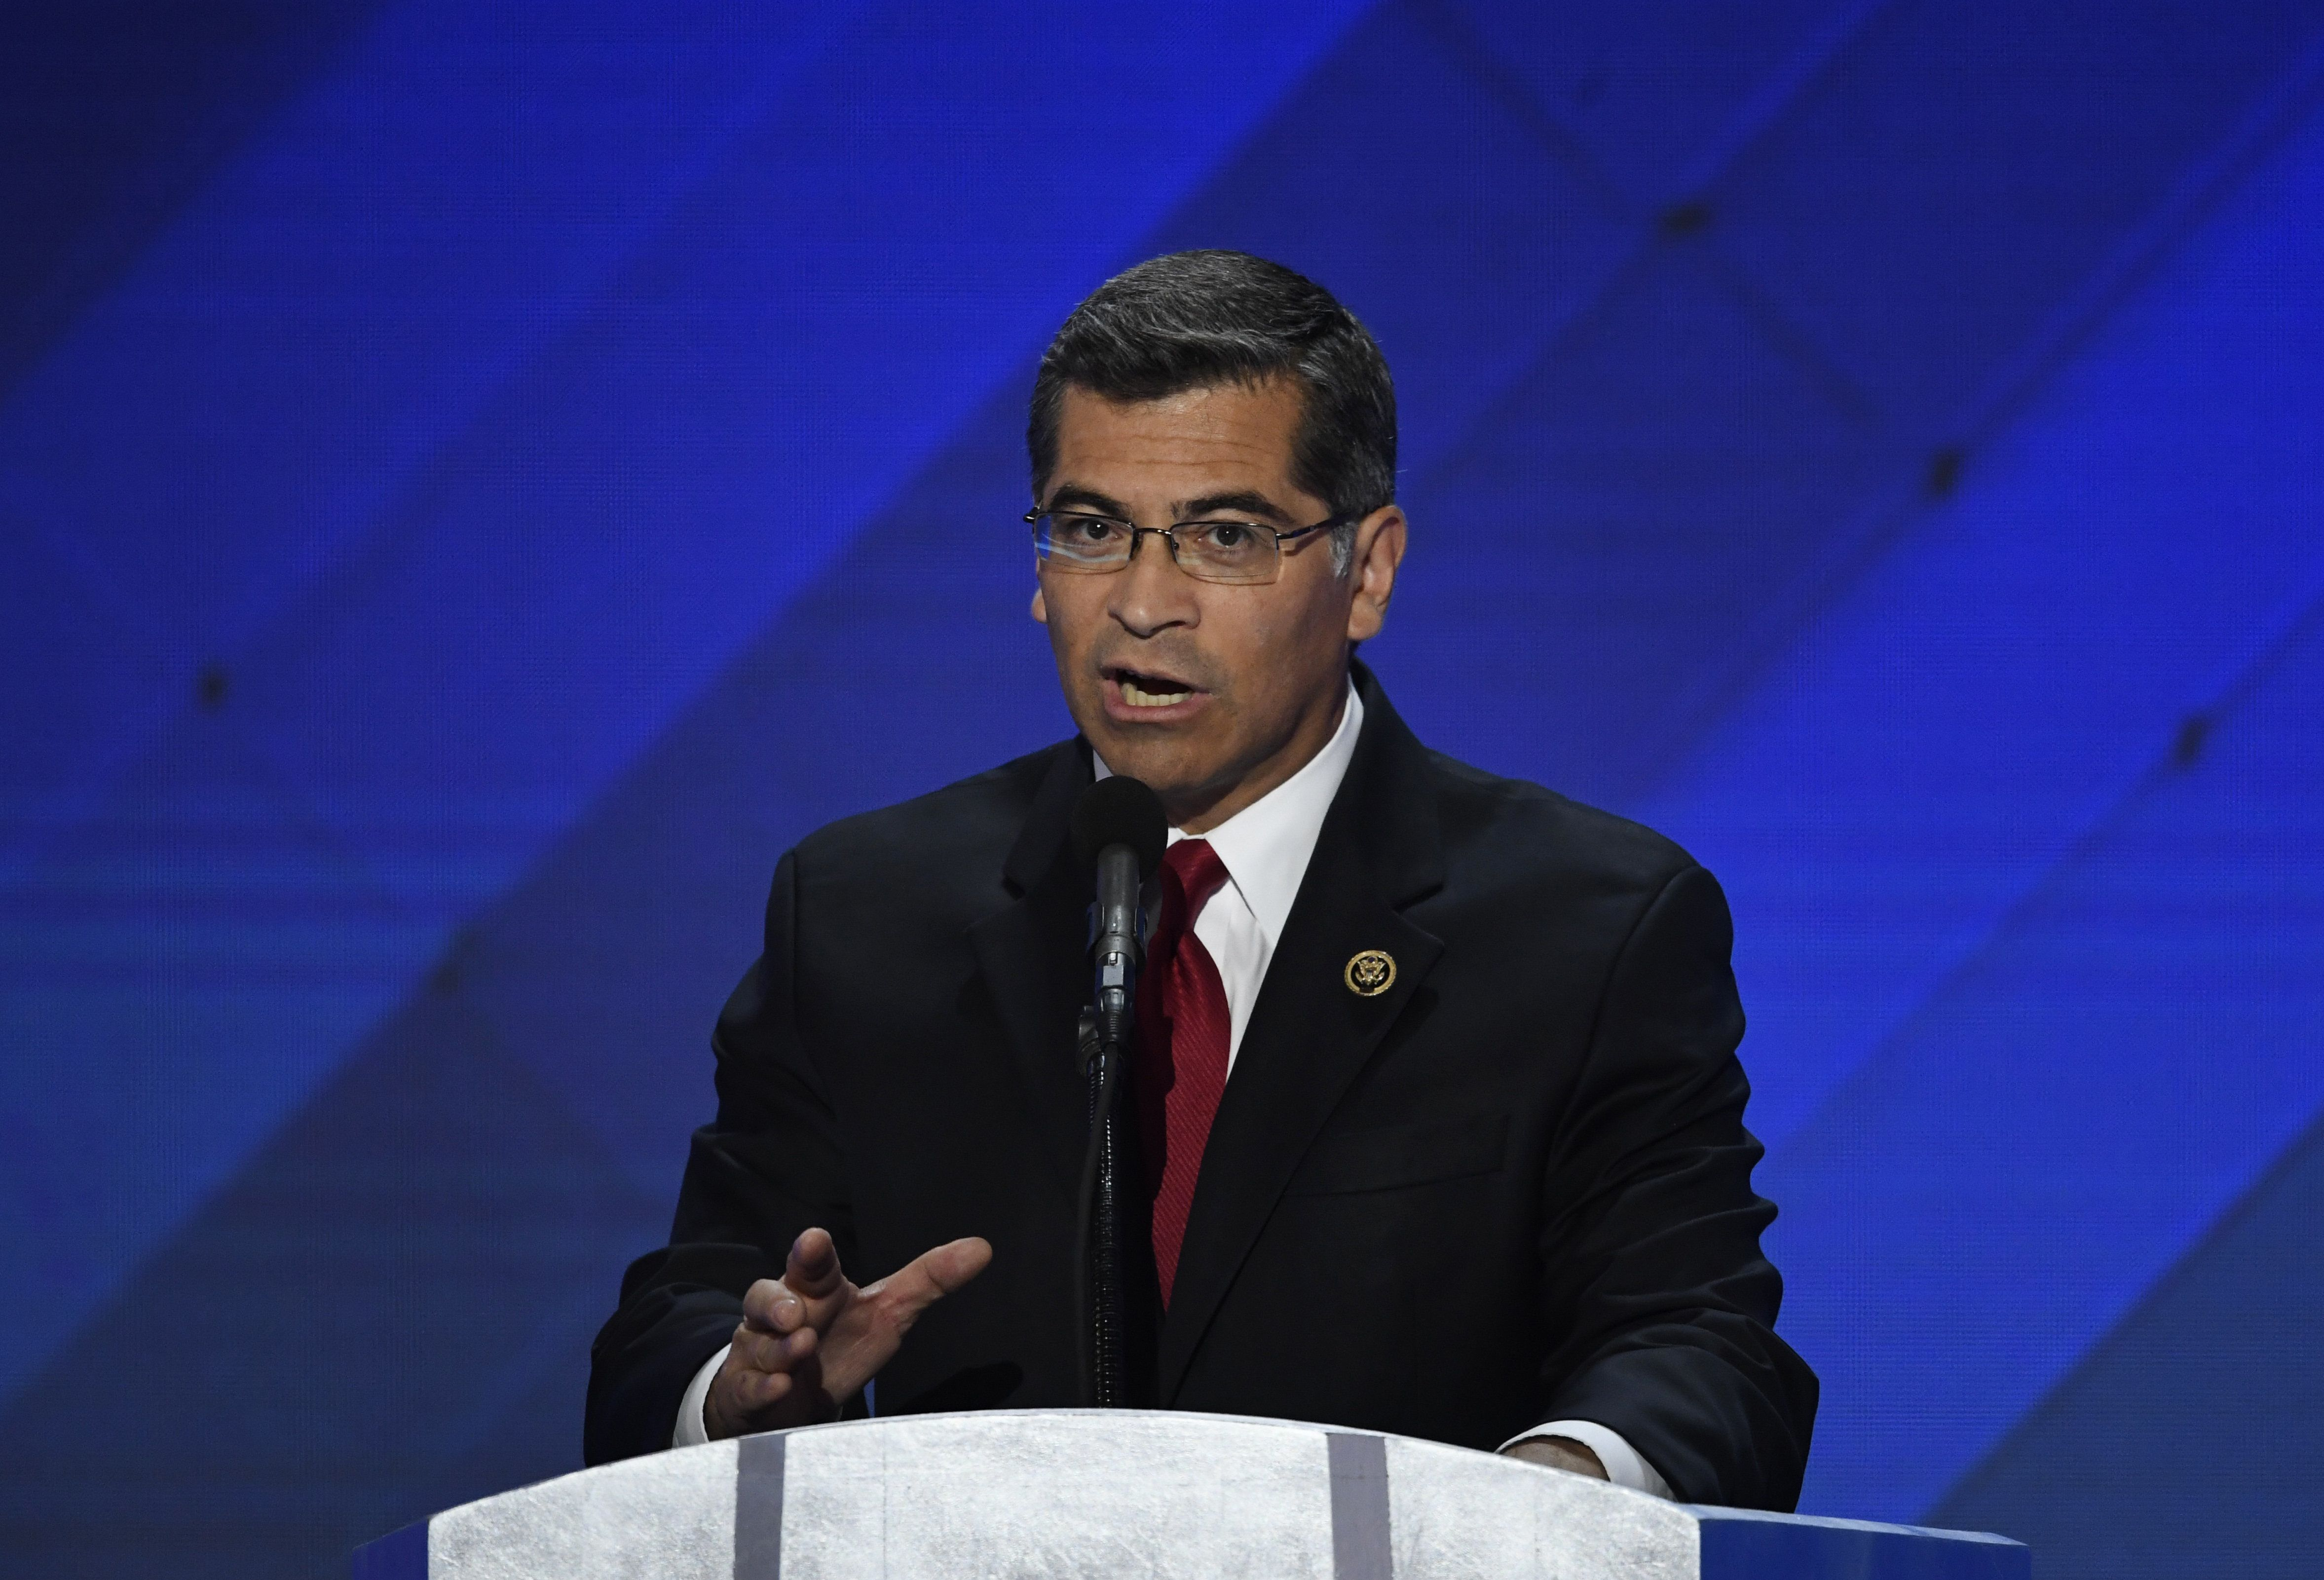 California Attorney General Xavier Becerra is one of many California leaders resisting Trump and his policies.